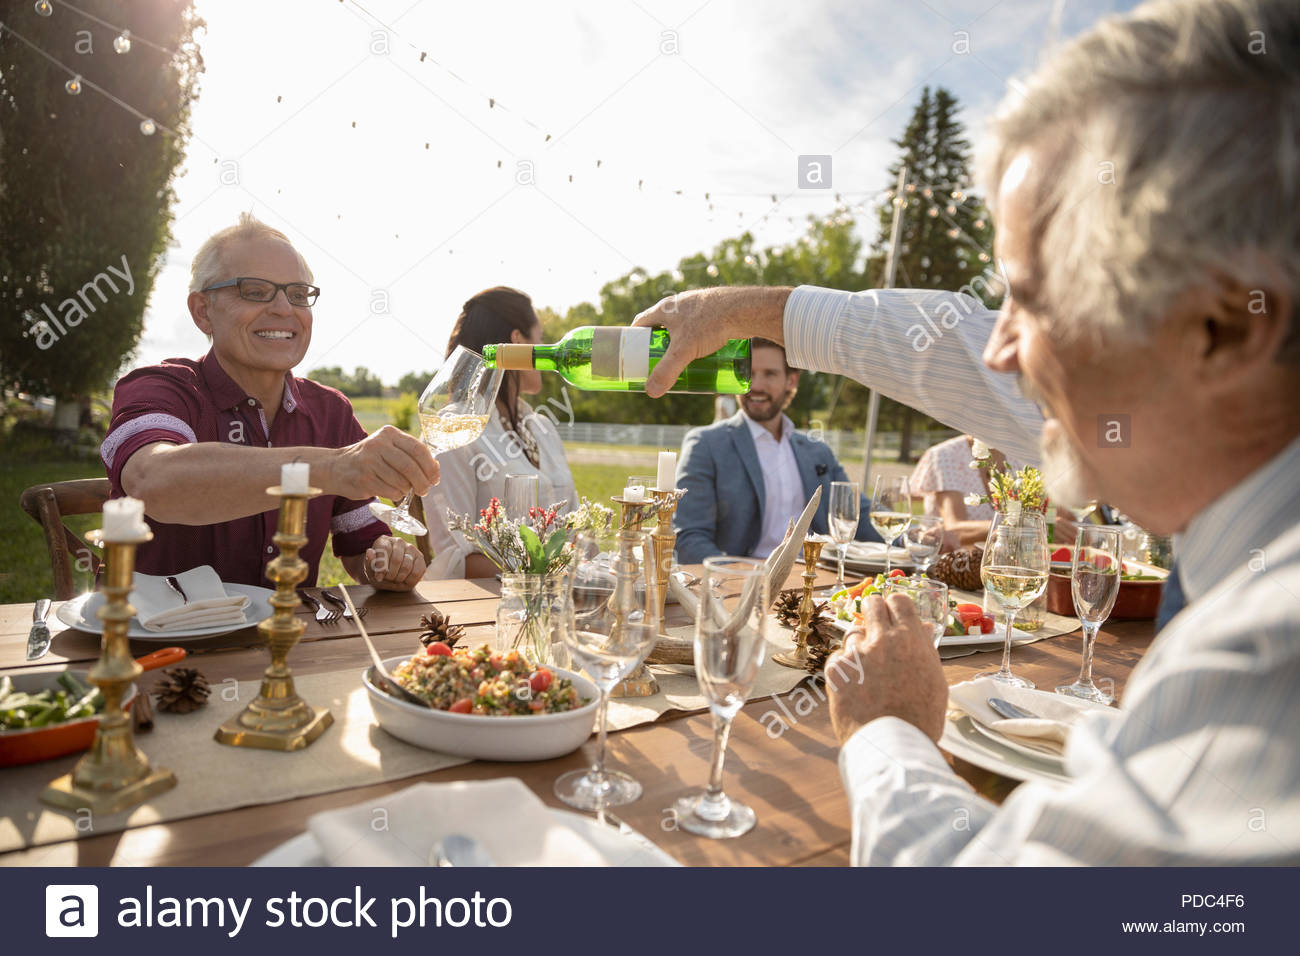 Man pouring wine for friend at wedding reception lunch table - Stock Image